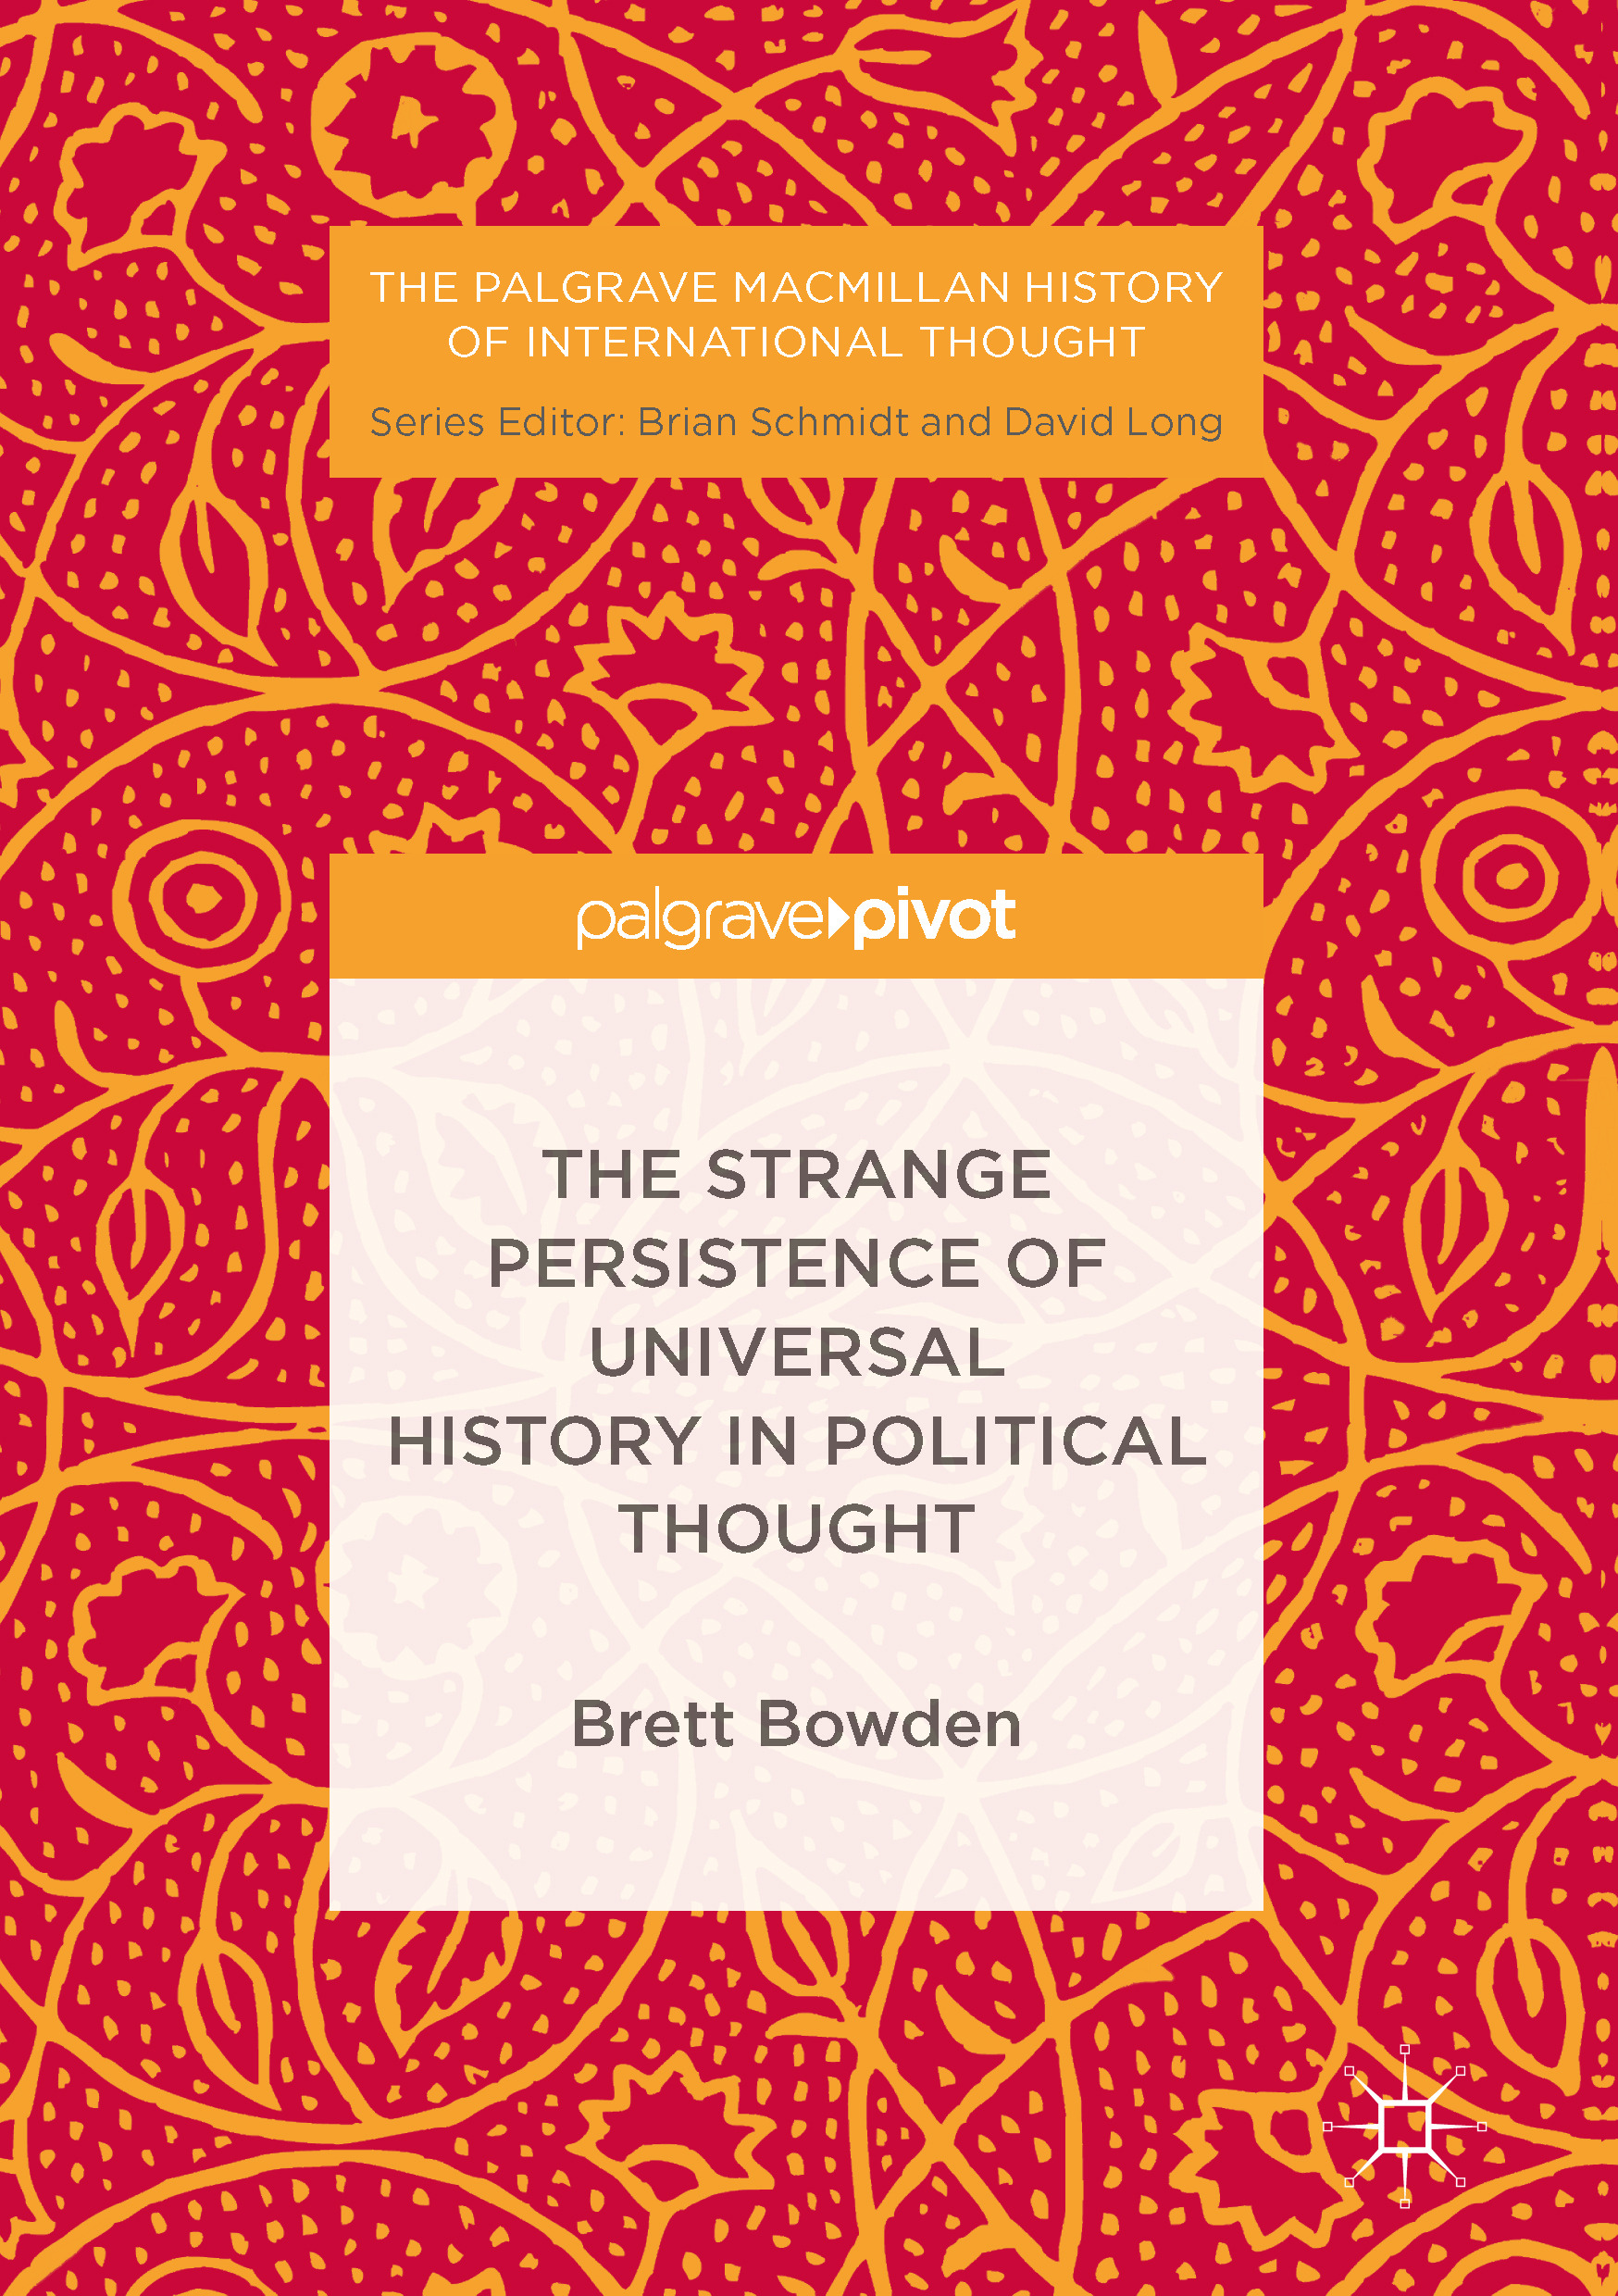 Bowden, Brett - The Strange Persistence of Universal History in Political Thought, ebook